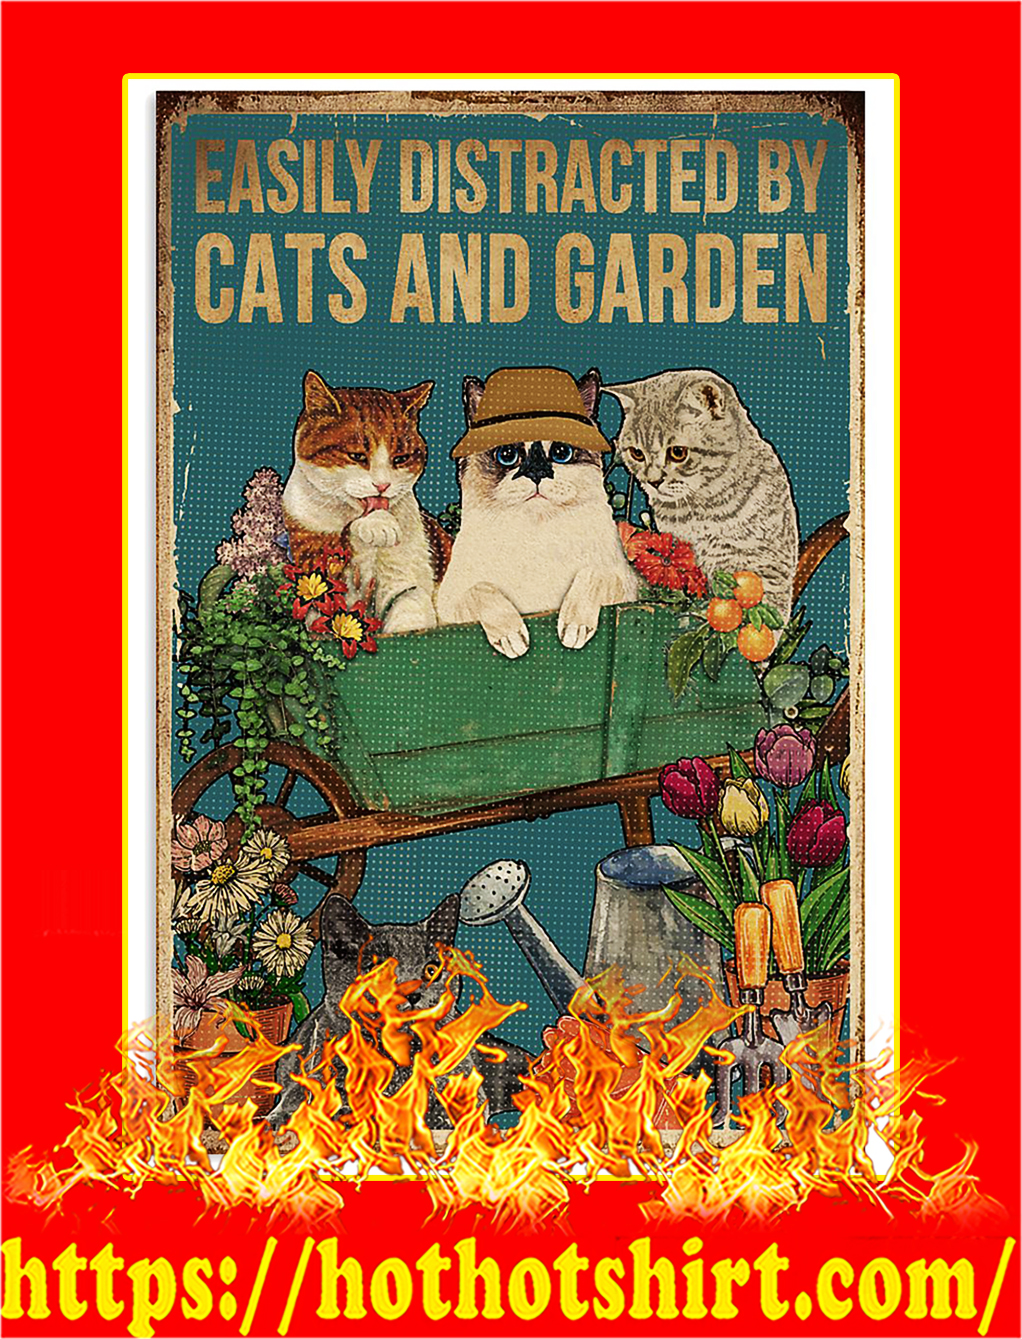 Retro Easily distracted by cats and garden poster- A3